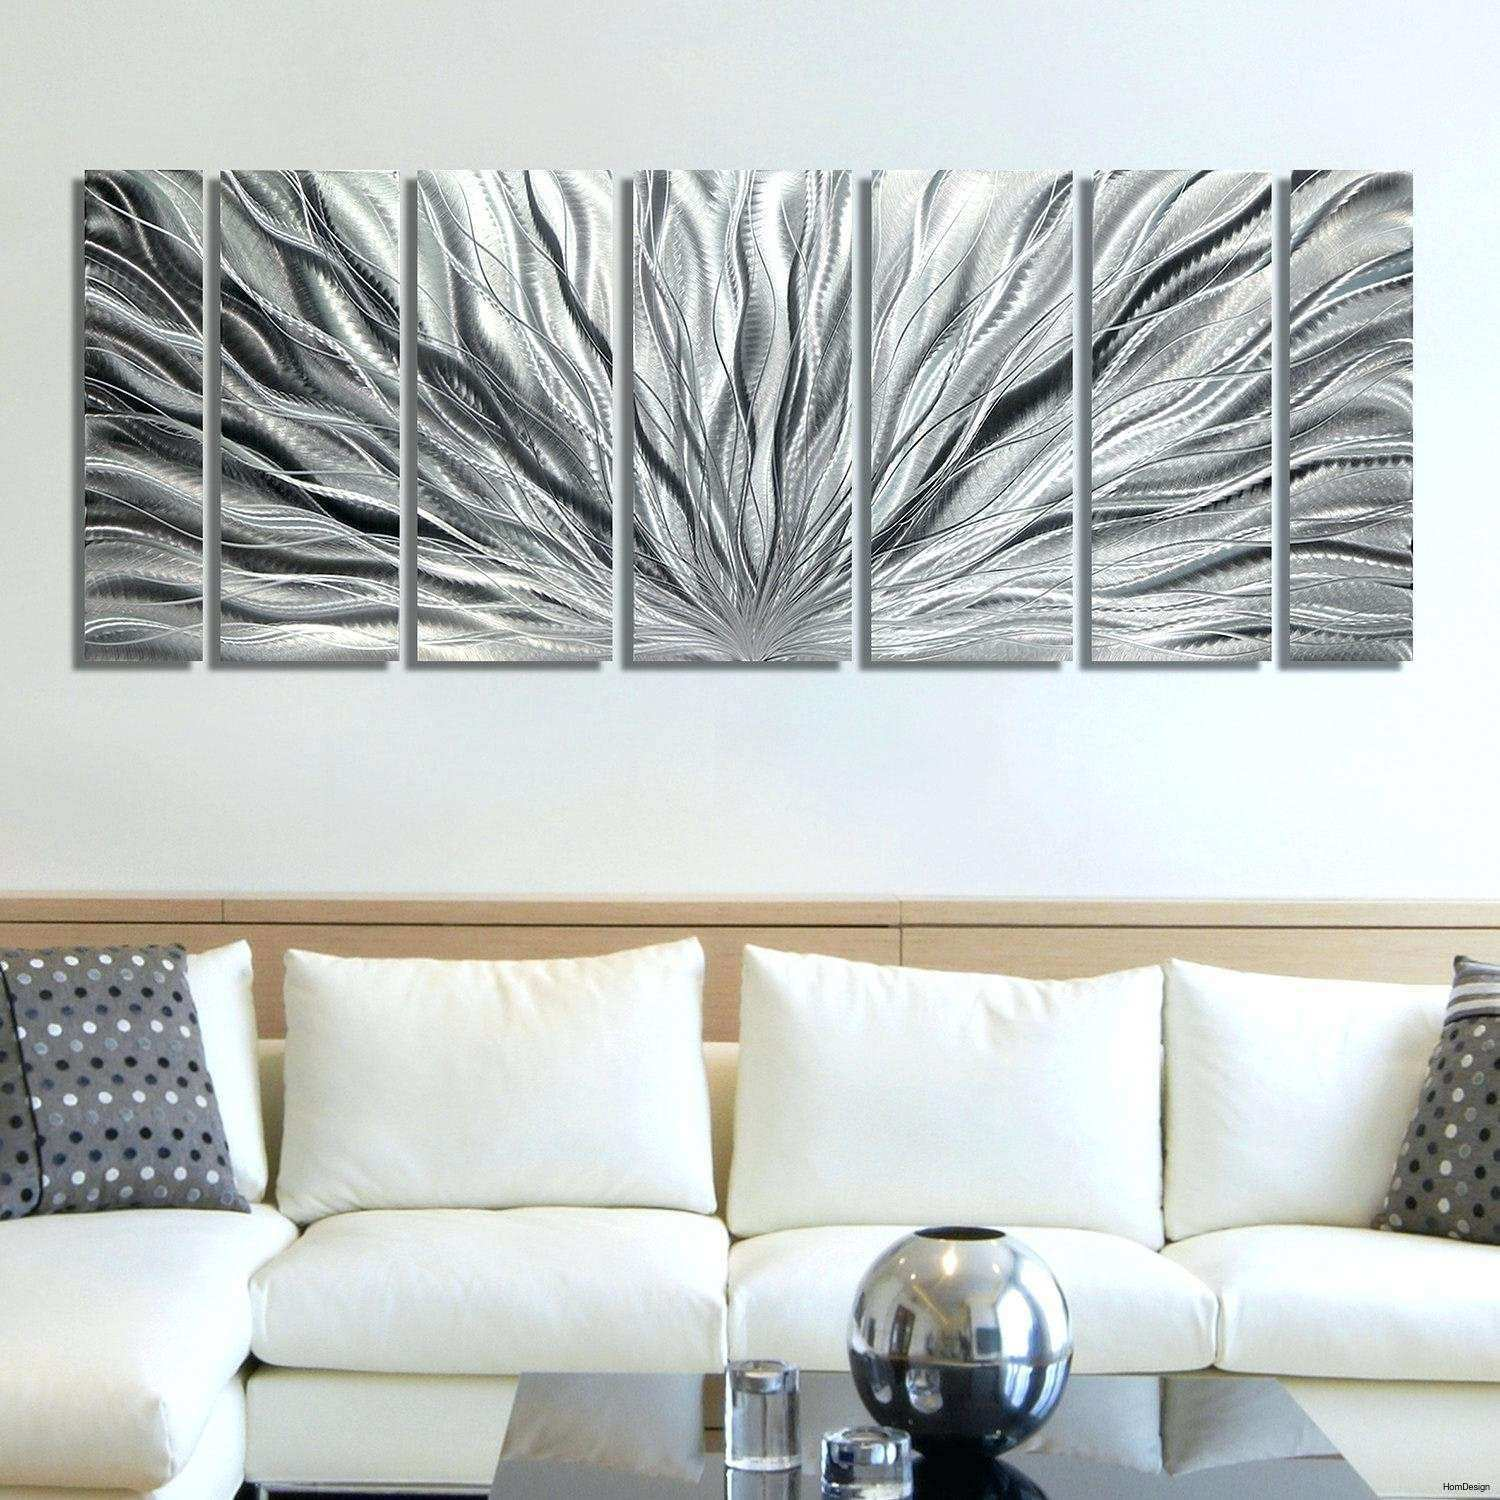 Wall Stickers for Living Room Fresh 34 Awesome Colorful Wall Decor